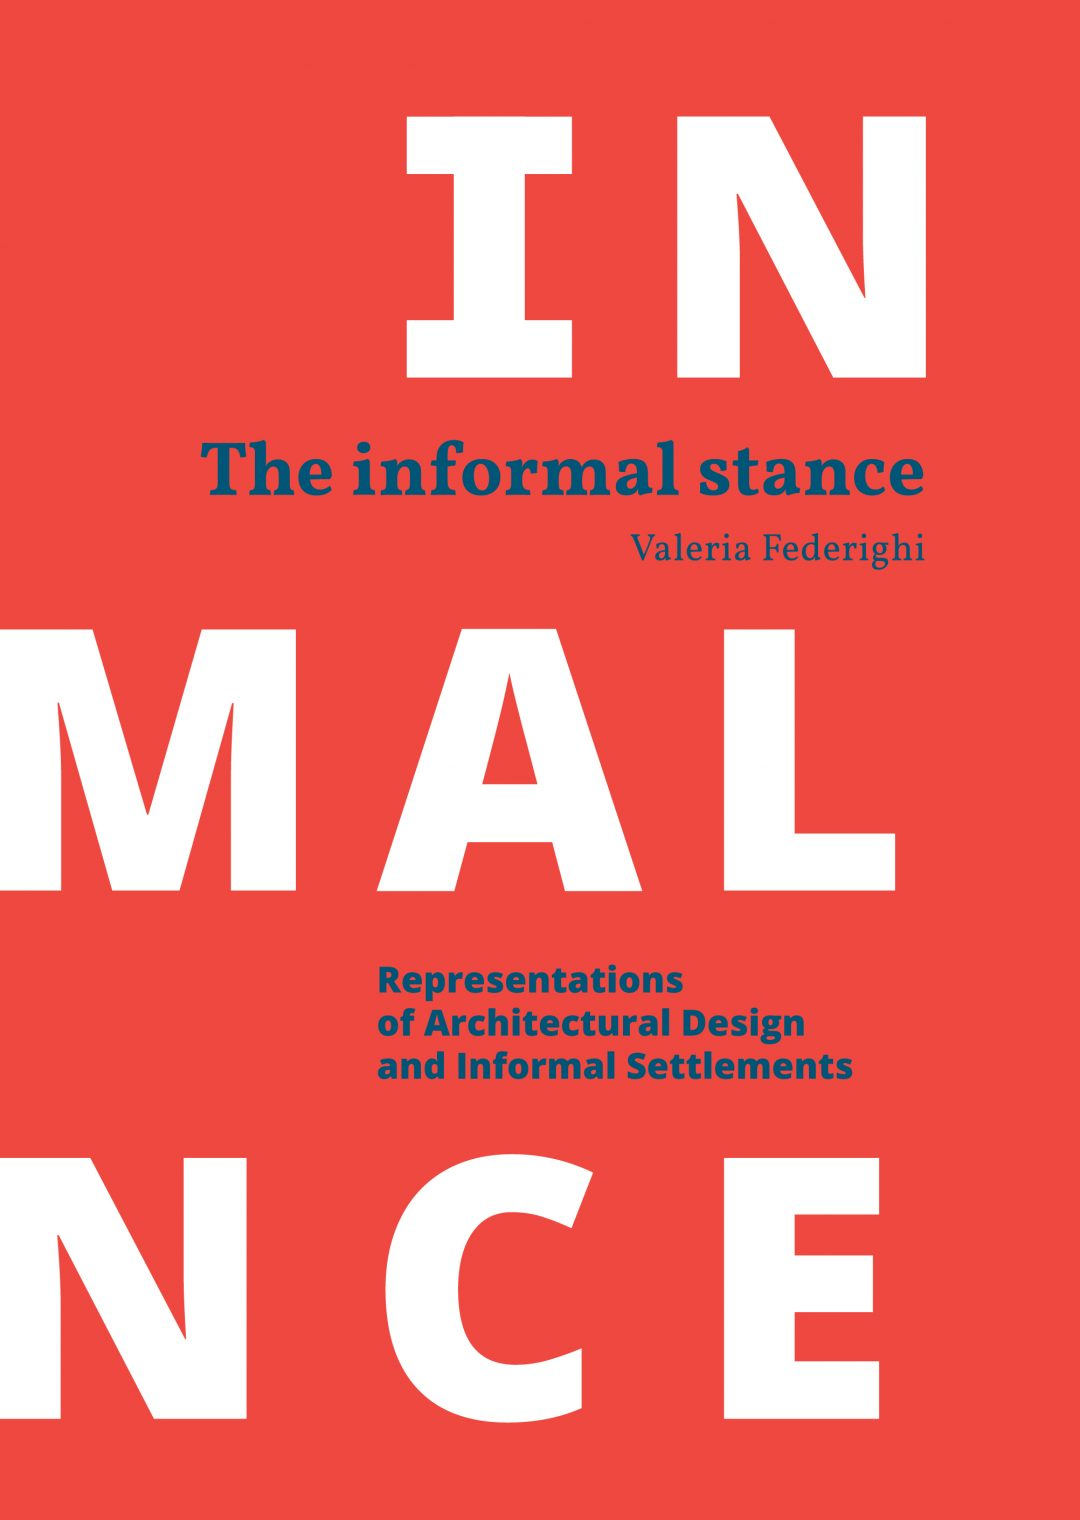 The Informal Stance. Representations of Architectural Design and Informal Settlements - Valeria Federighi